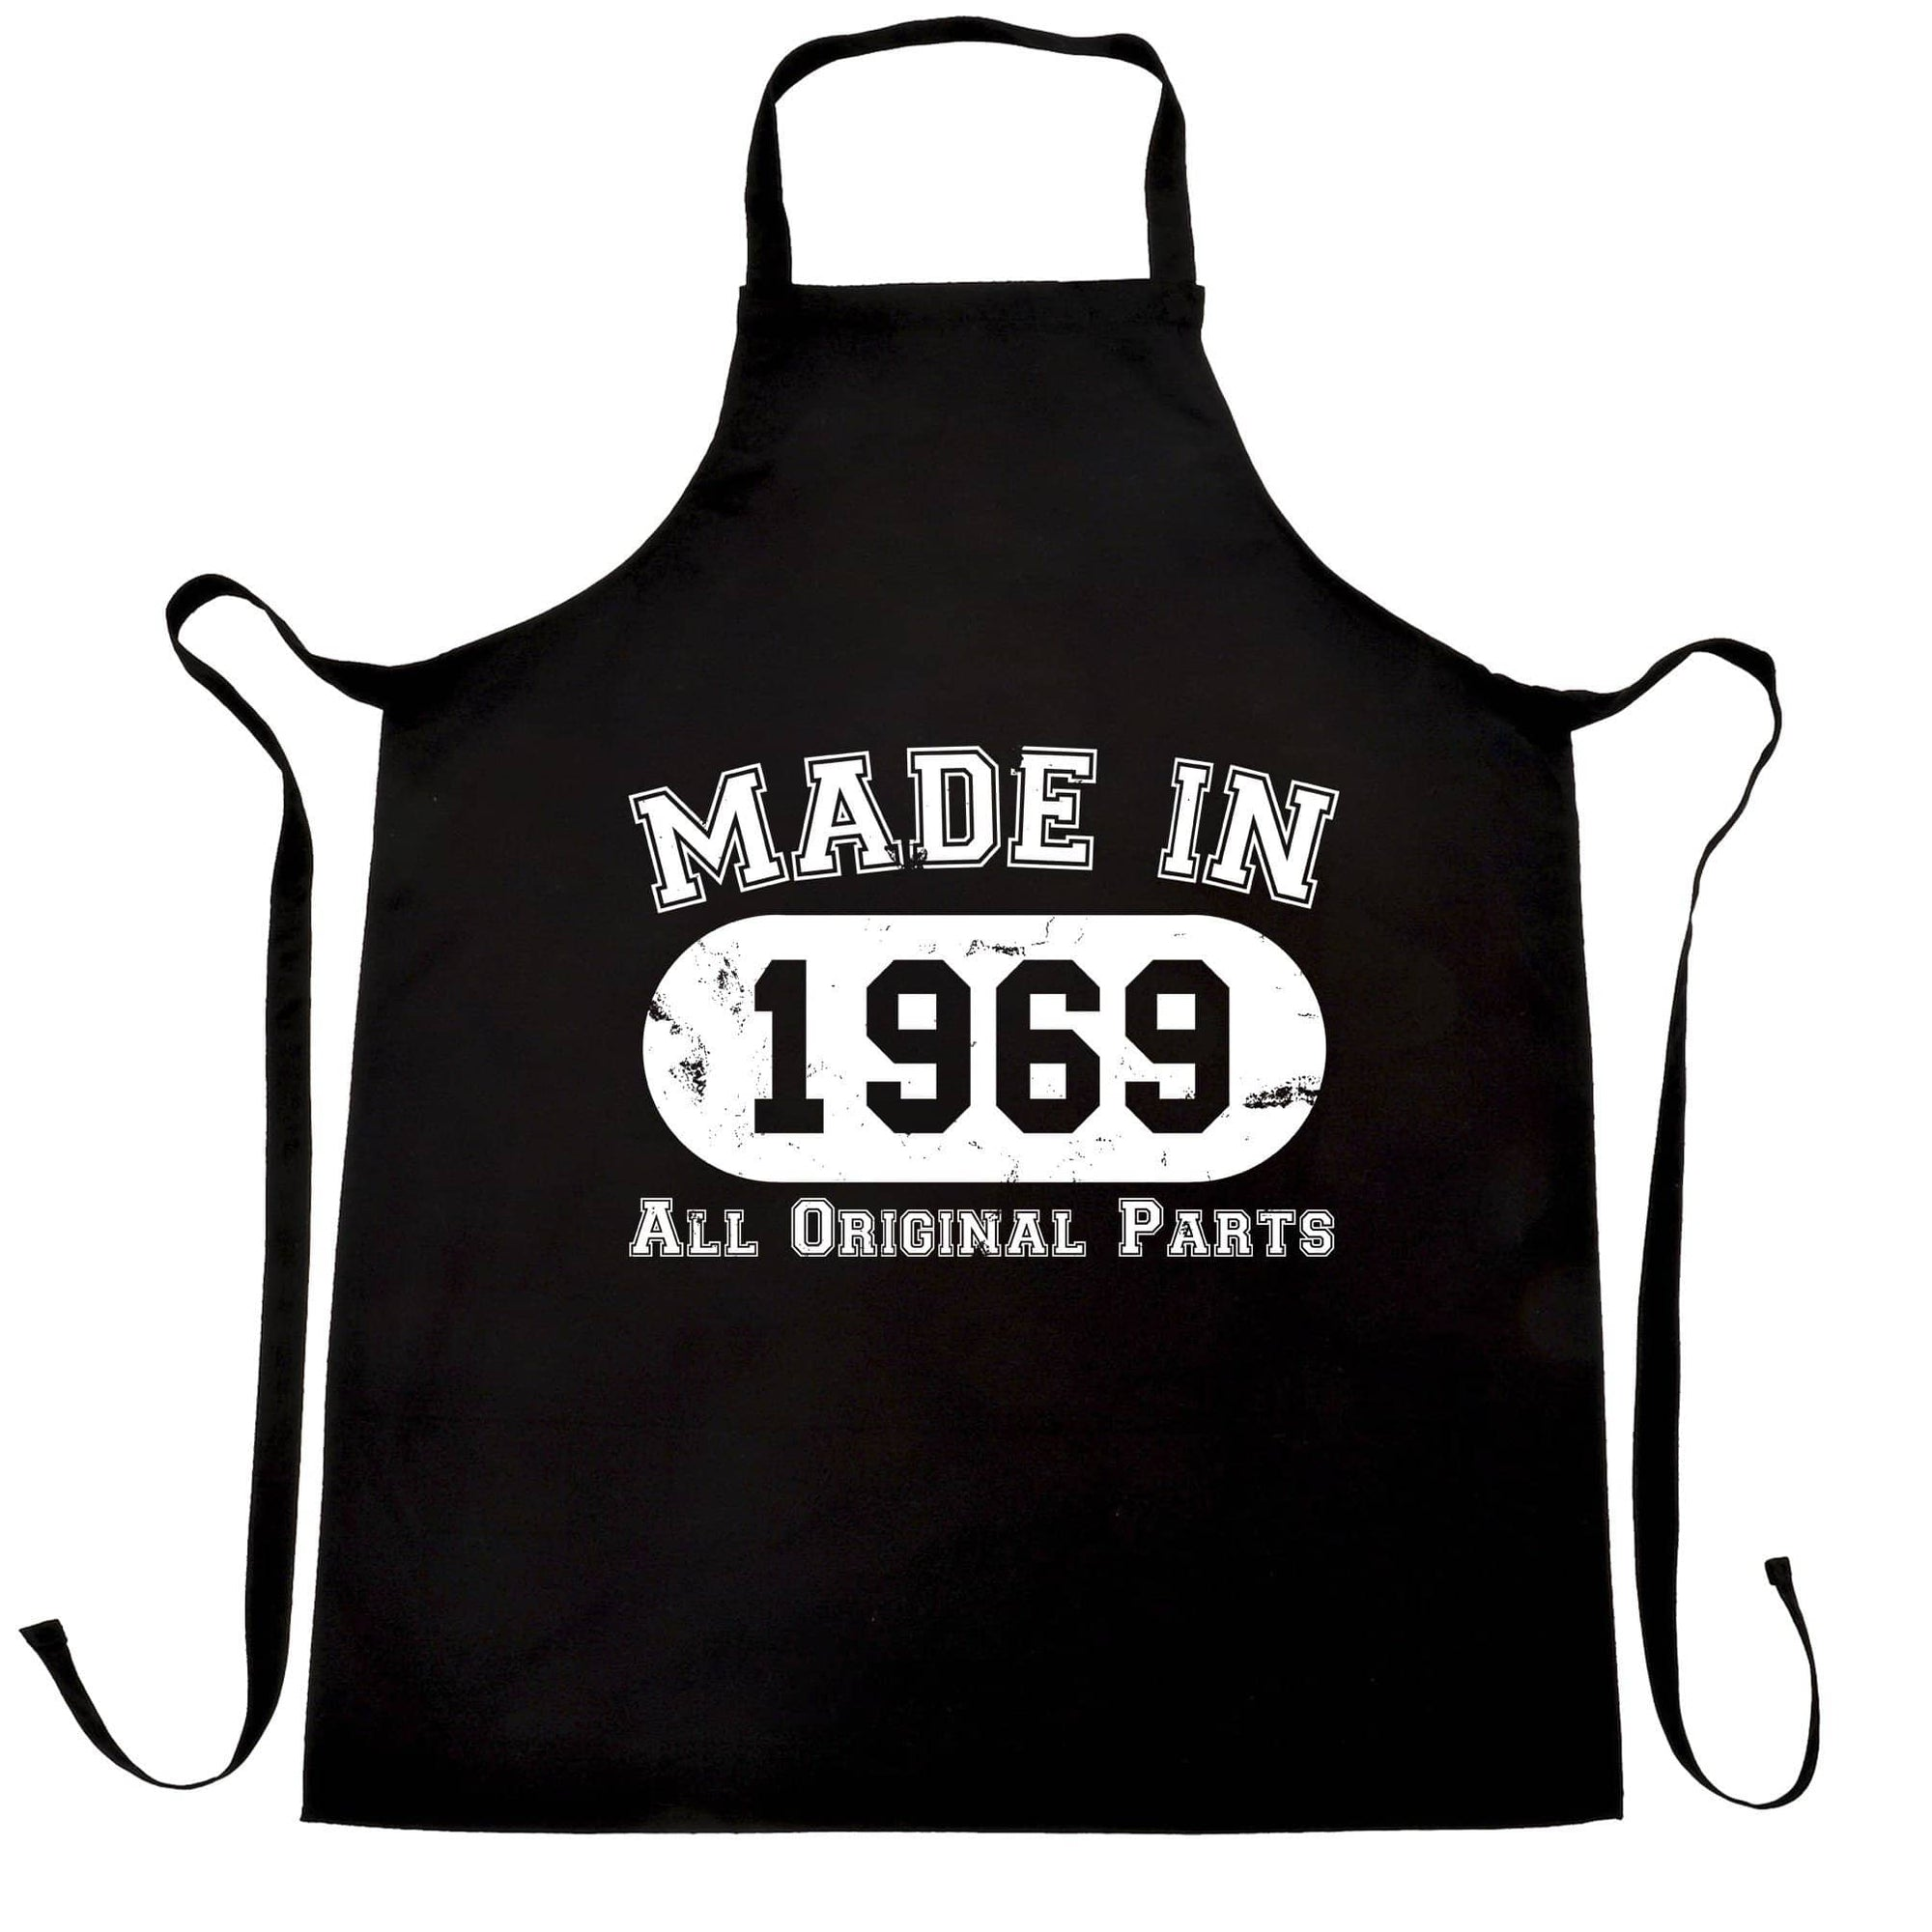 Made in 1969 All Original Parts Apron [Distressed]